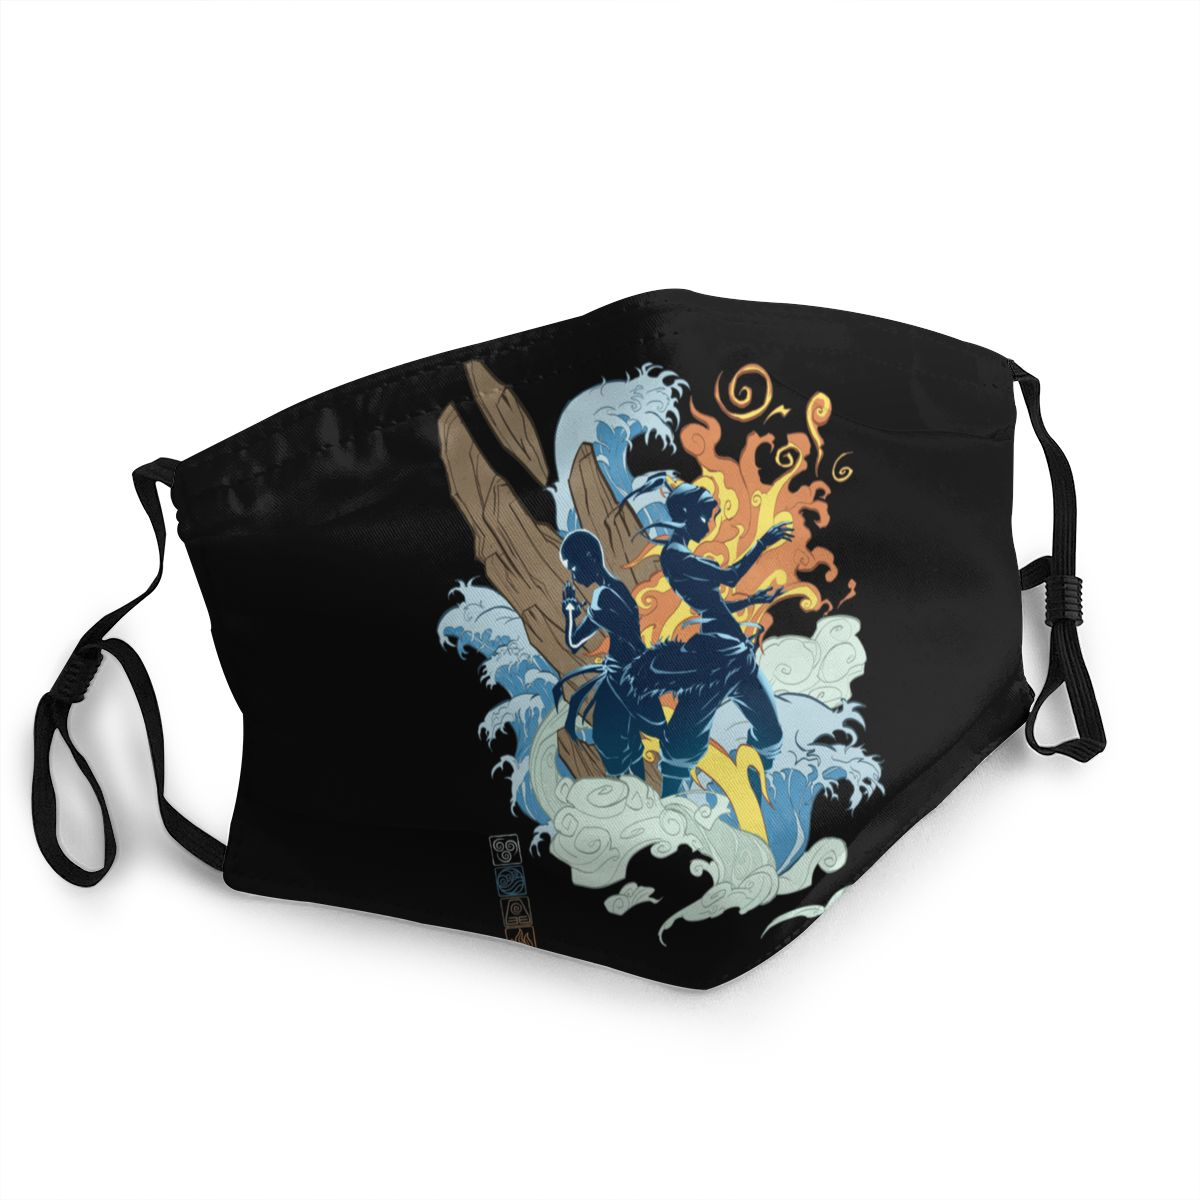 <font><b>Avatar</b></font> The Last Airbender Unisex Non-Disposable Mouth Face <font><b>Mask</b></font> Anti Haze Dust <font><b>Mask</b></font> Protection <font><b>Mask</b></font> Respirator Mouth Muffle image